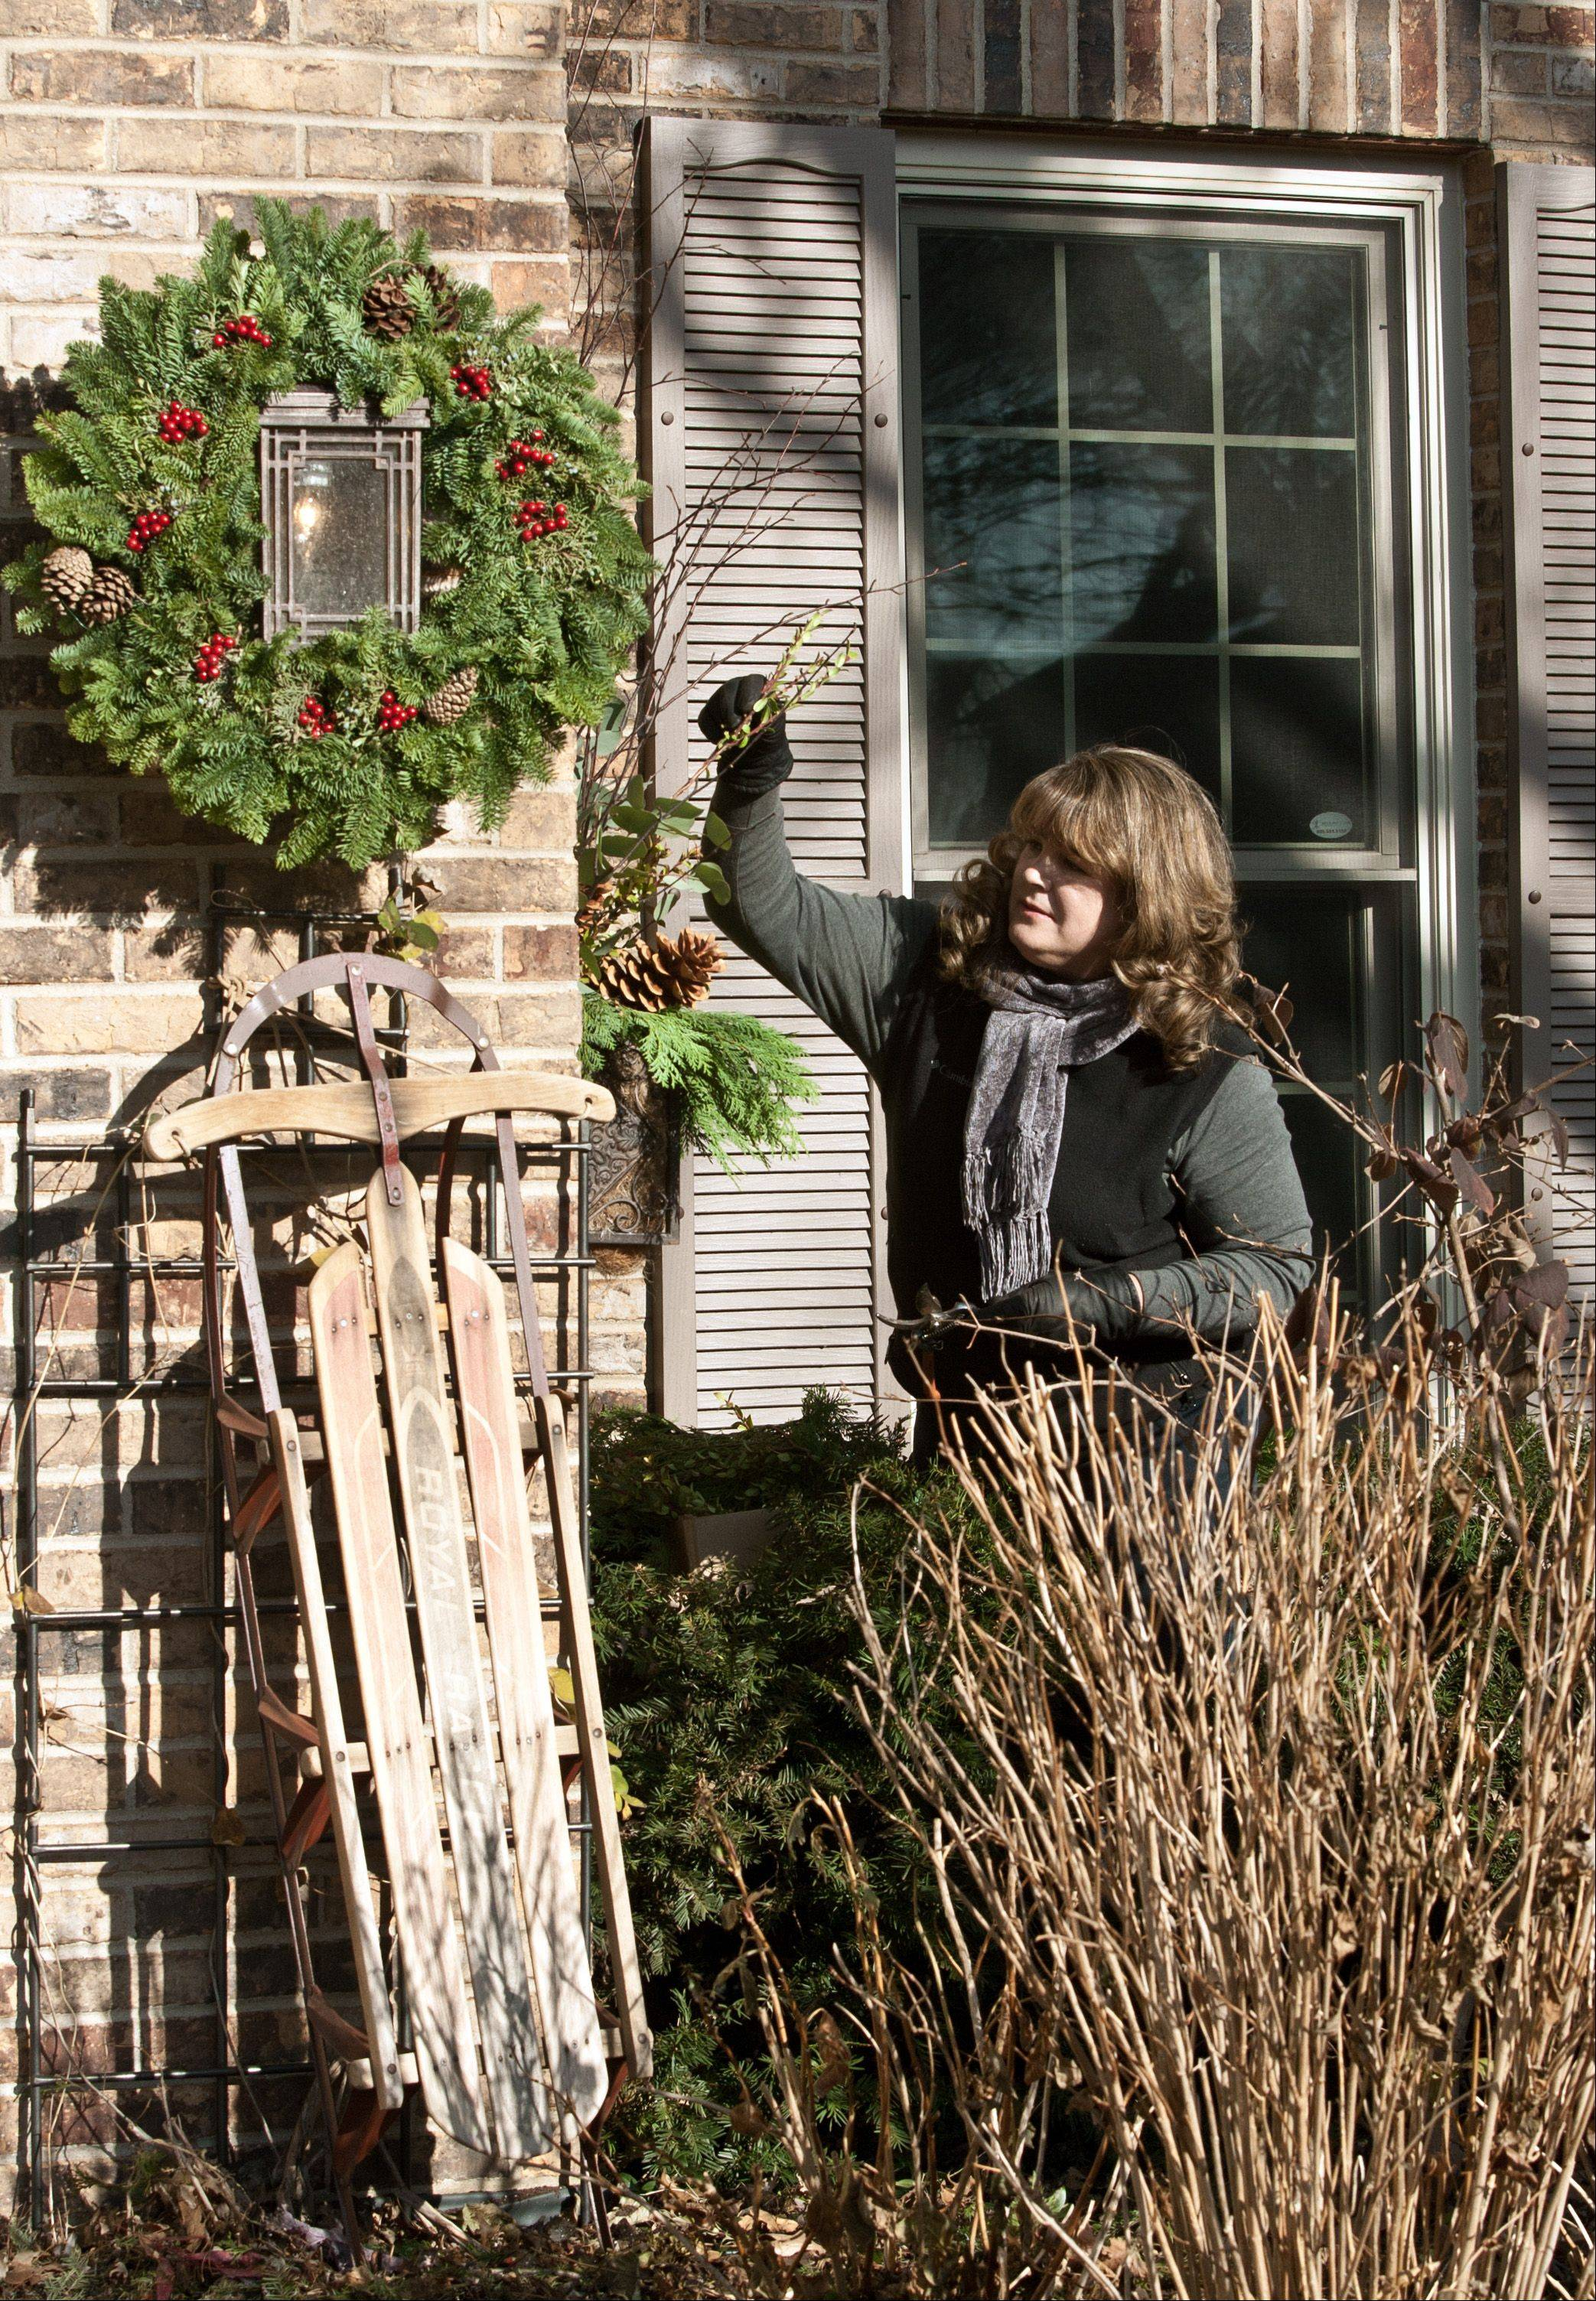 Landscape architect uses her yard design to teach others